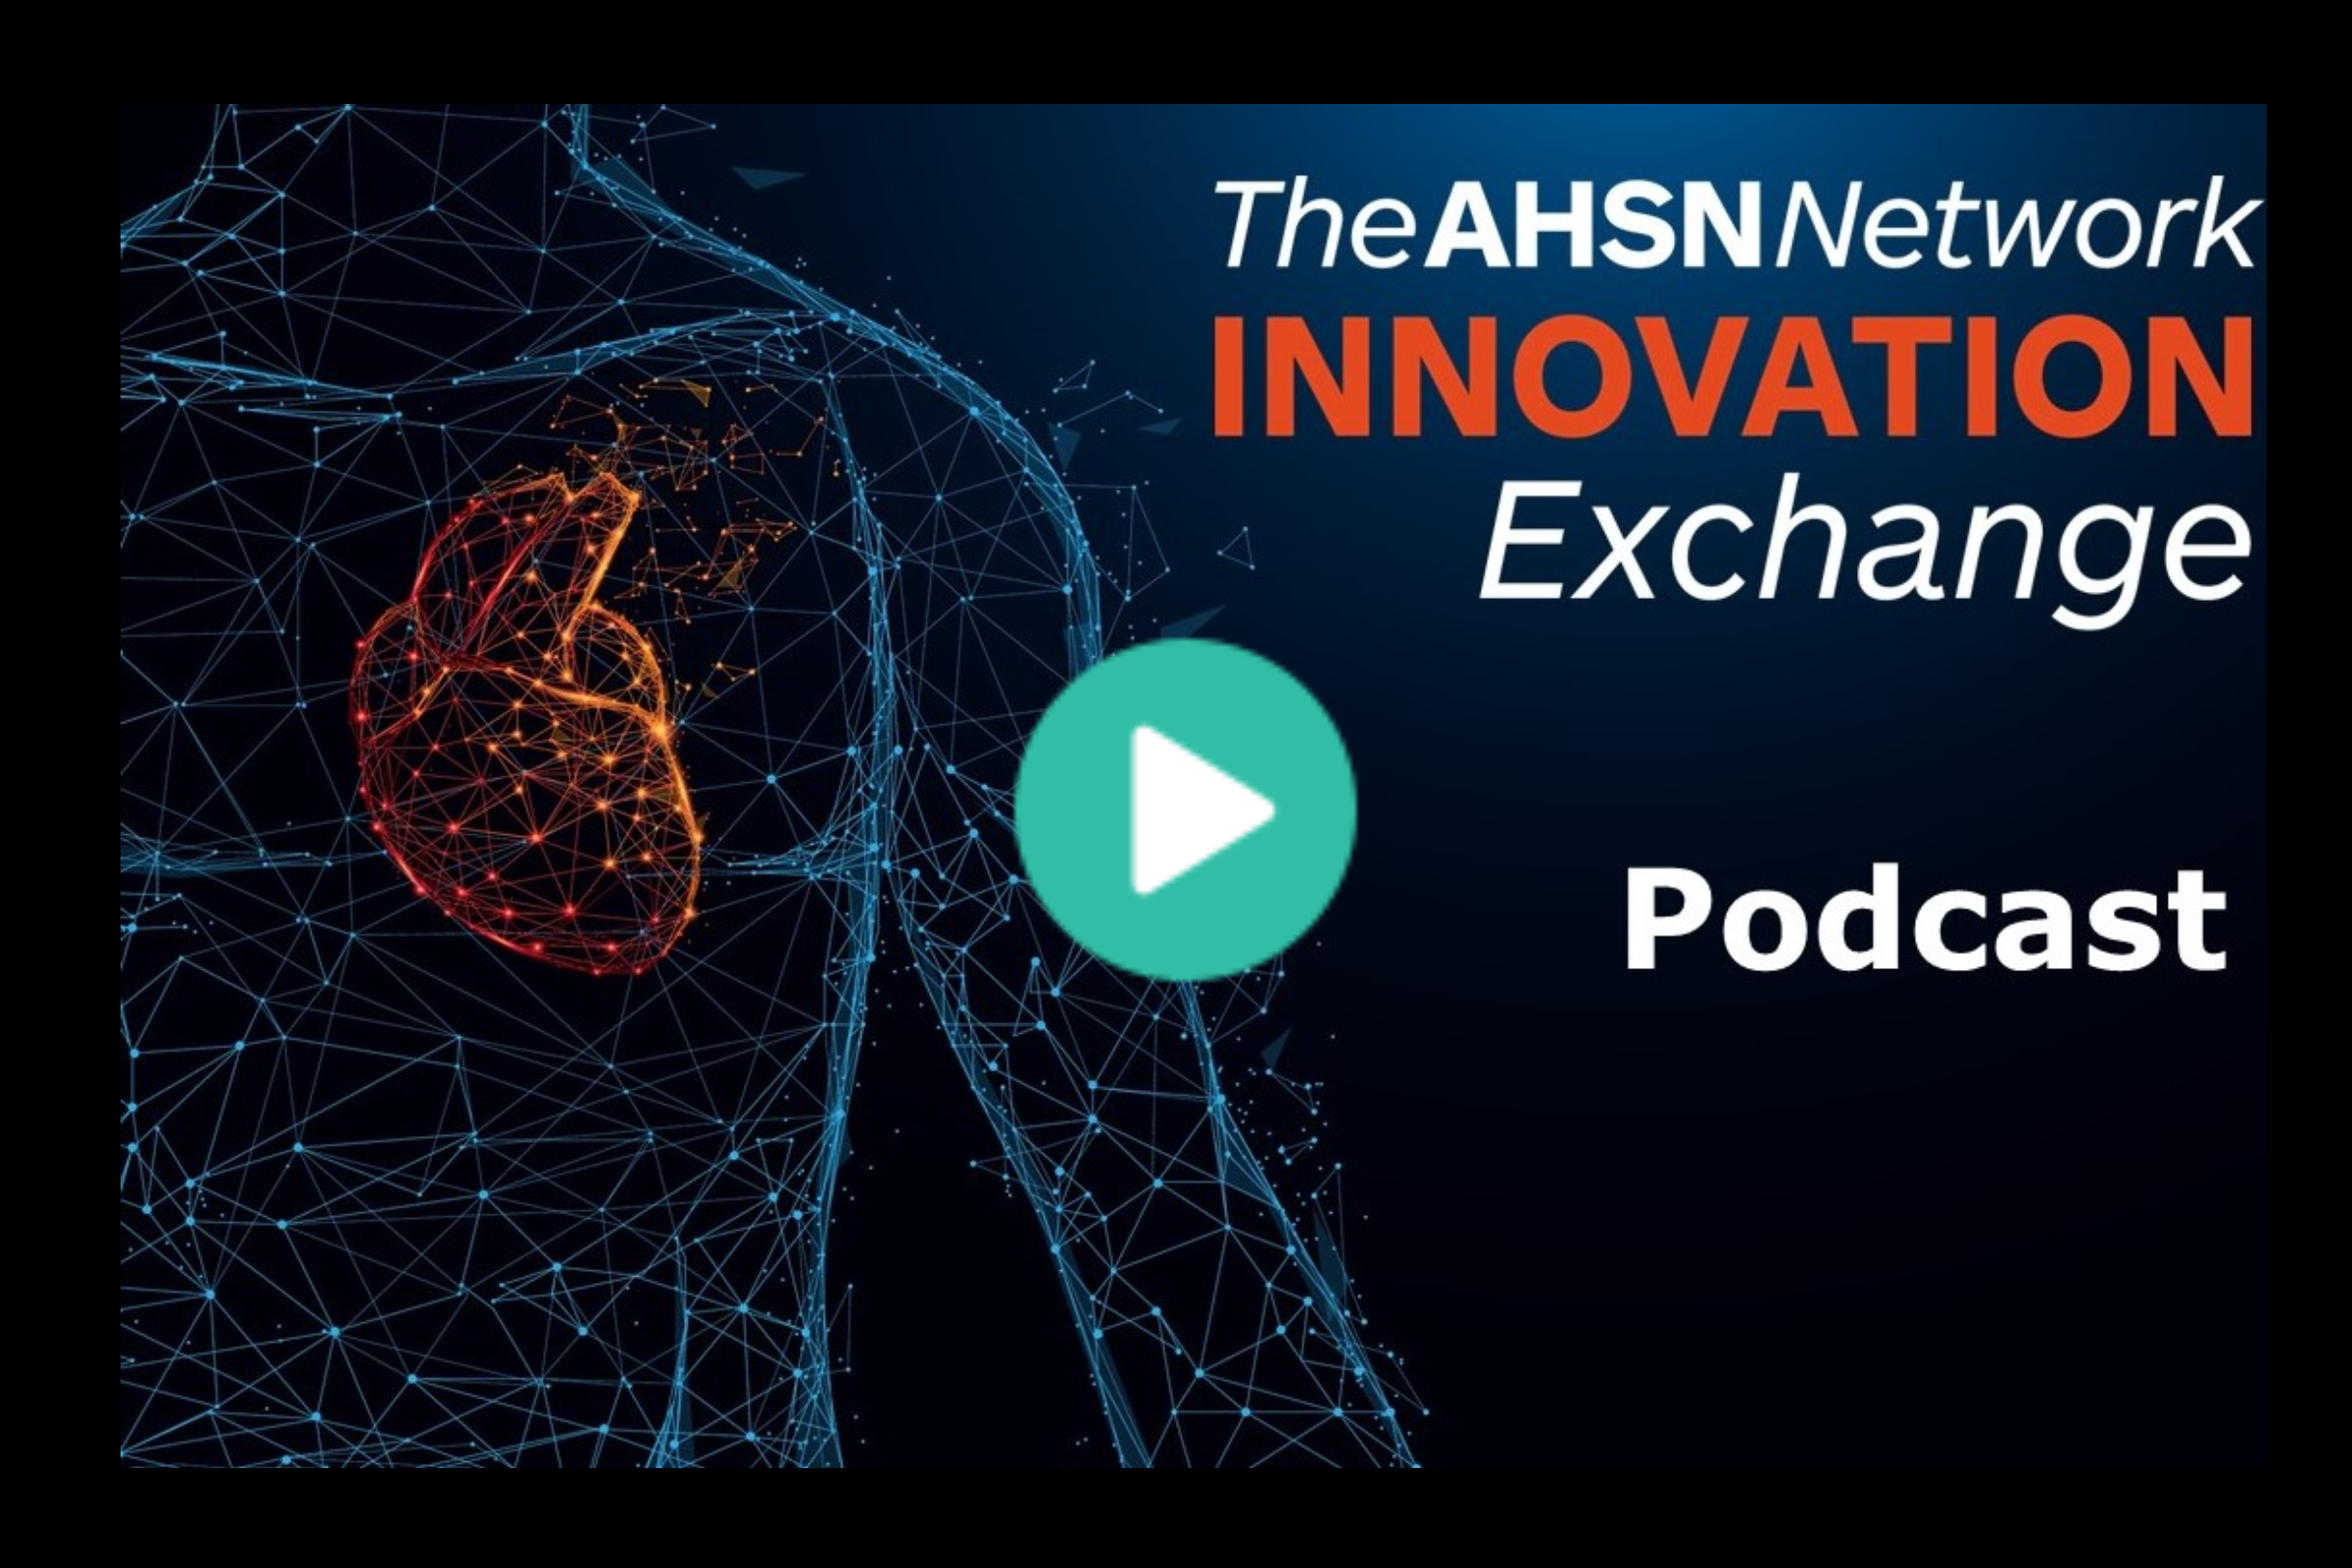 AHSN Innovation Exchange Podcast